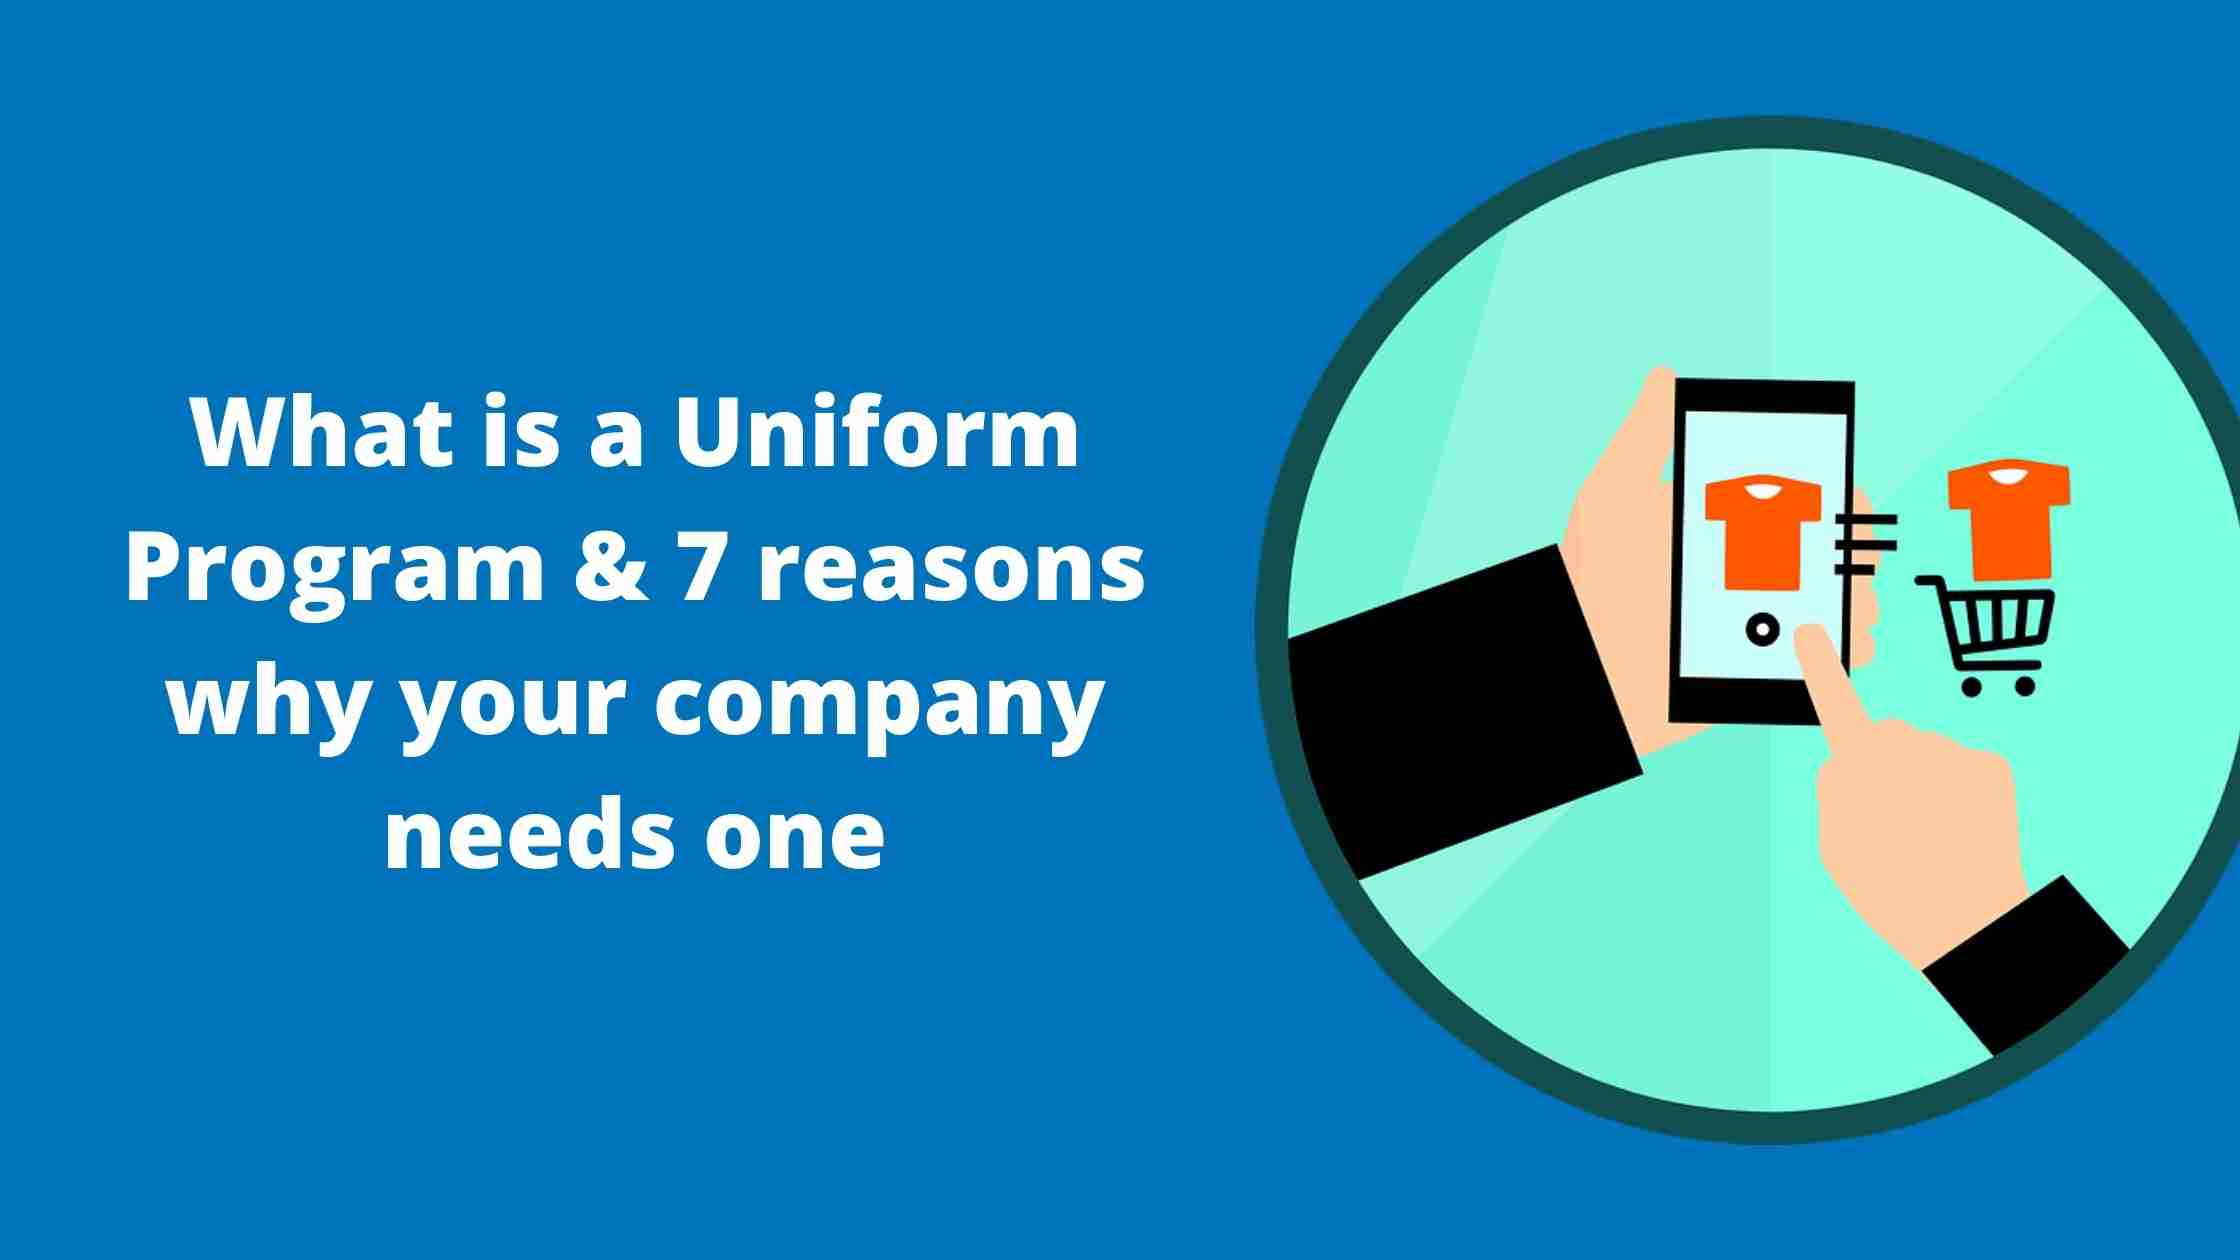 What is a uniform program and 7 reasons why your company needs one